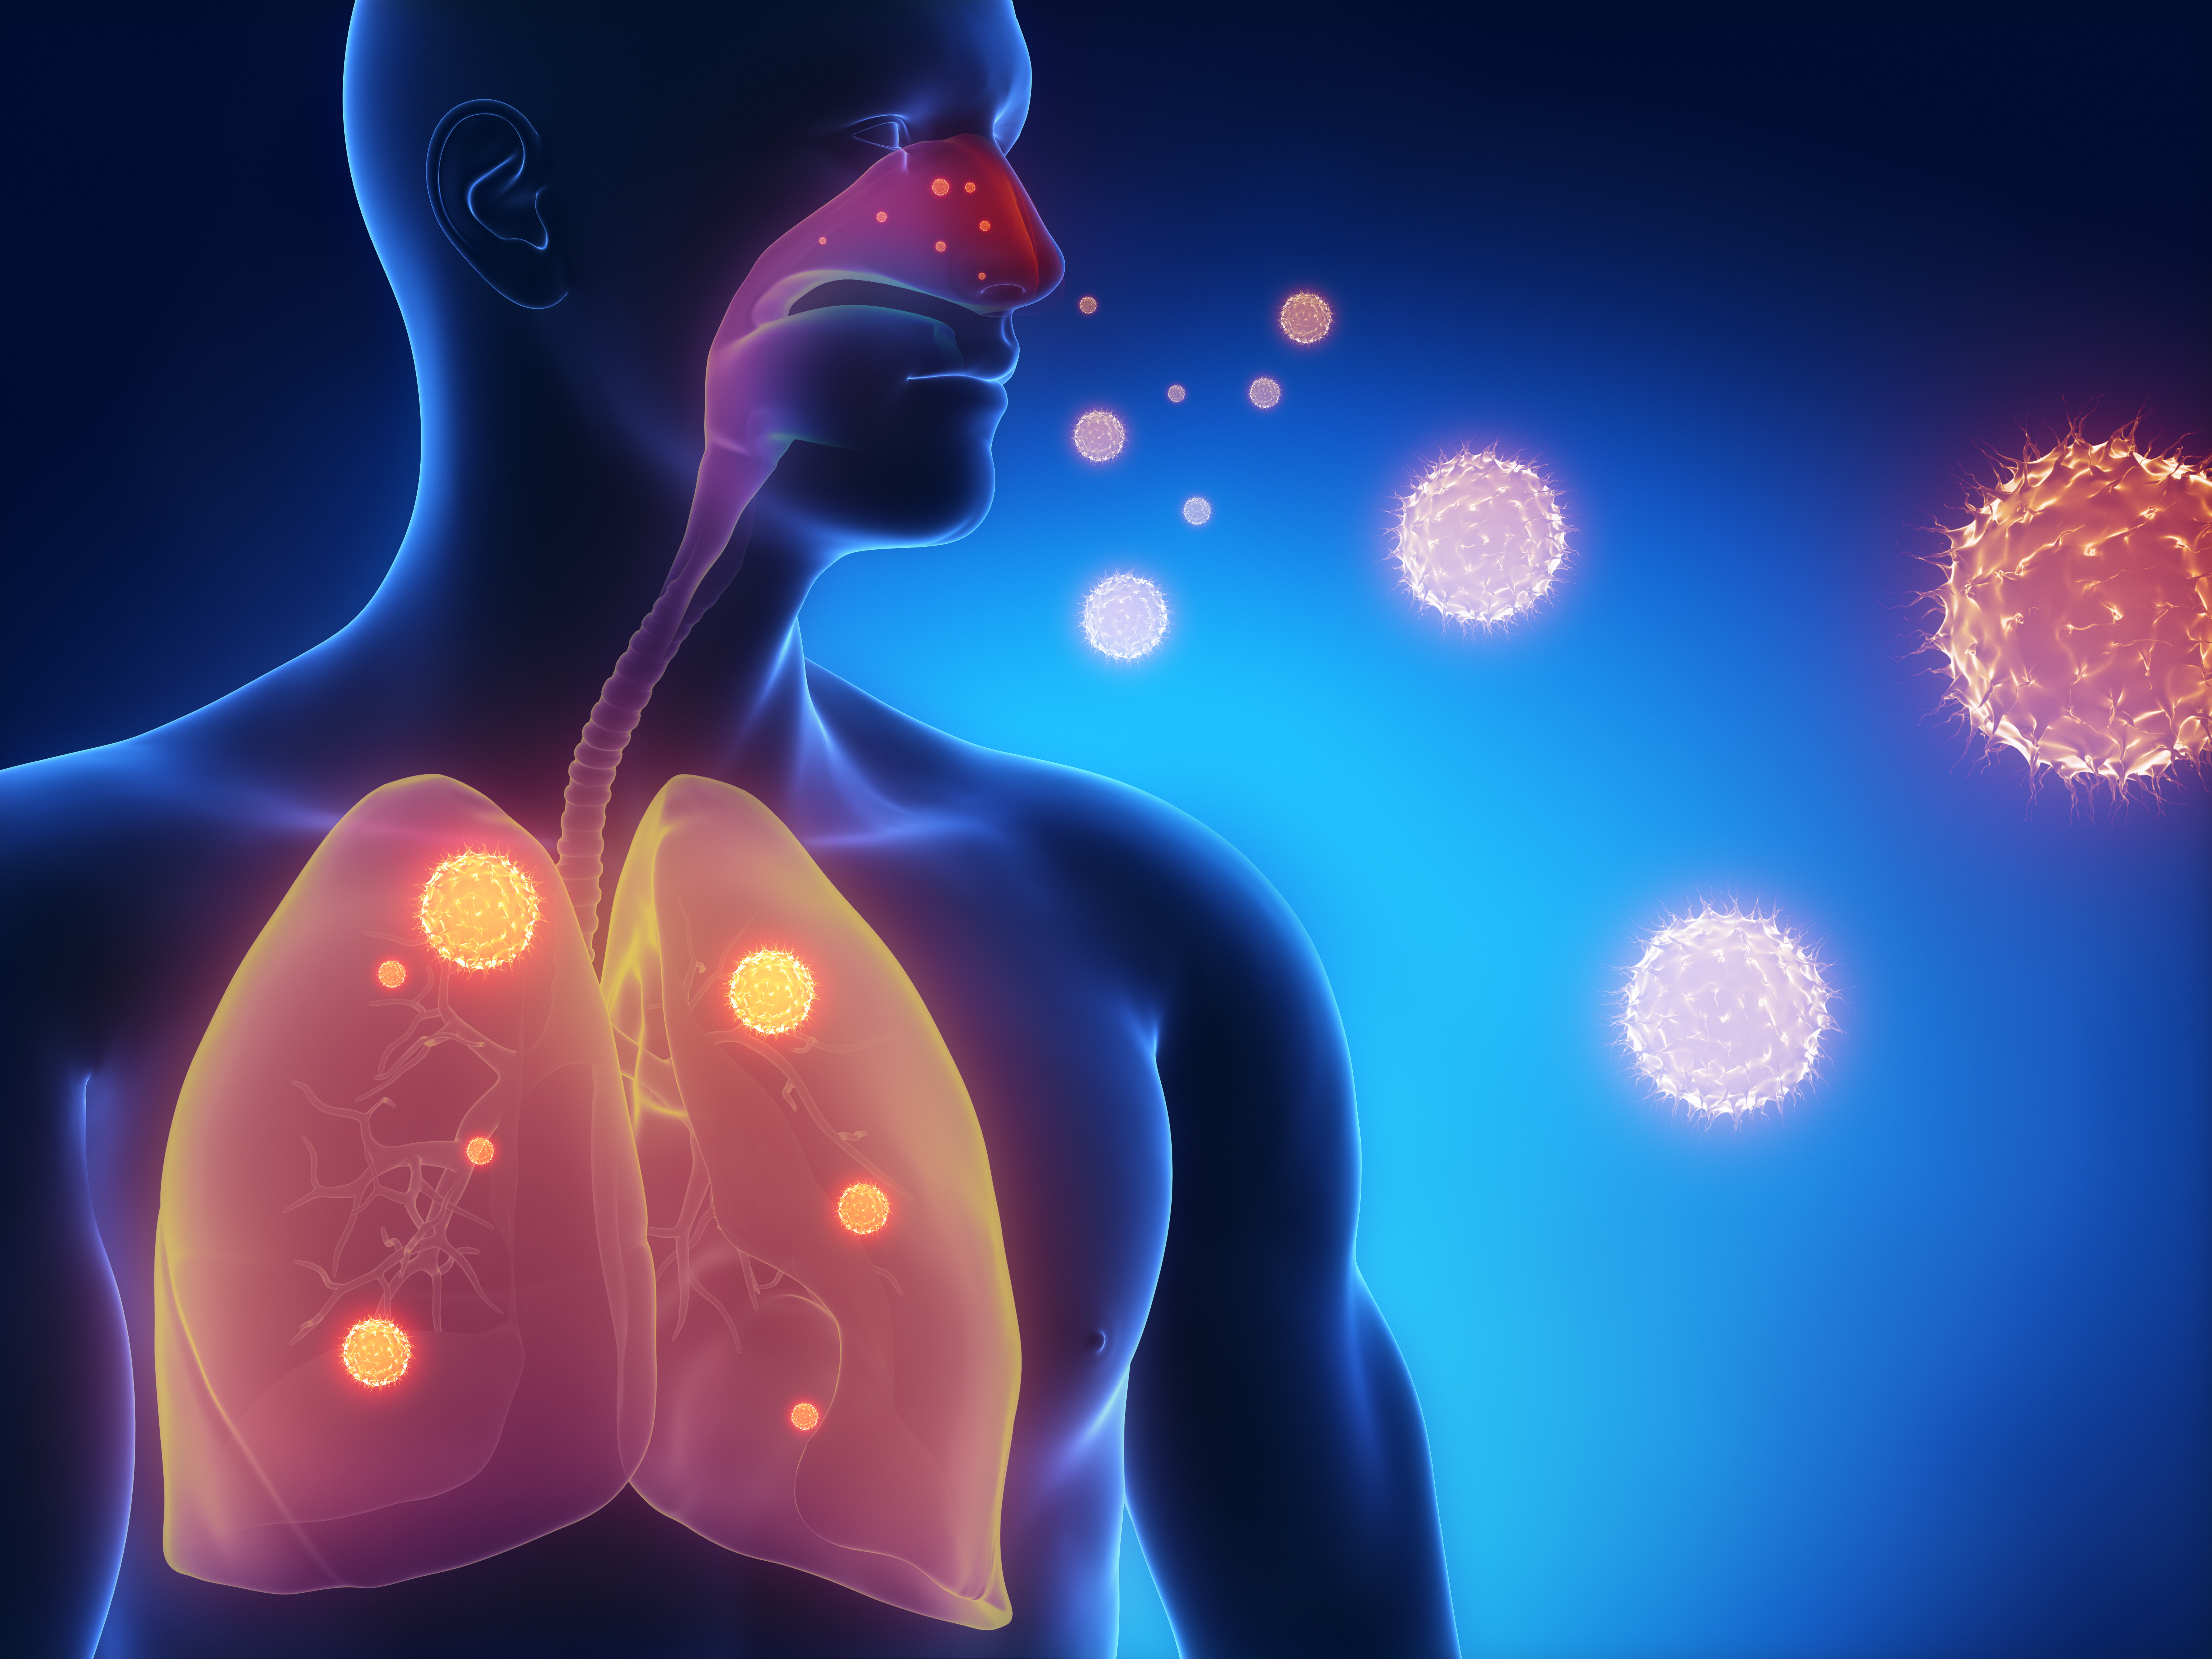 Novel Vaccine Strategy Developed For Human Respiratory Syncytial Virus Infection